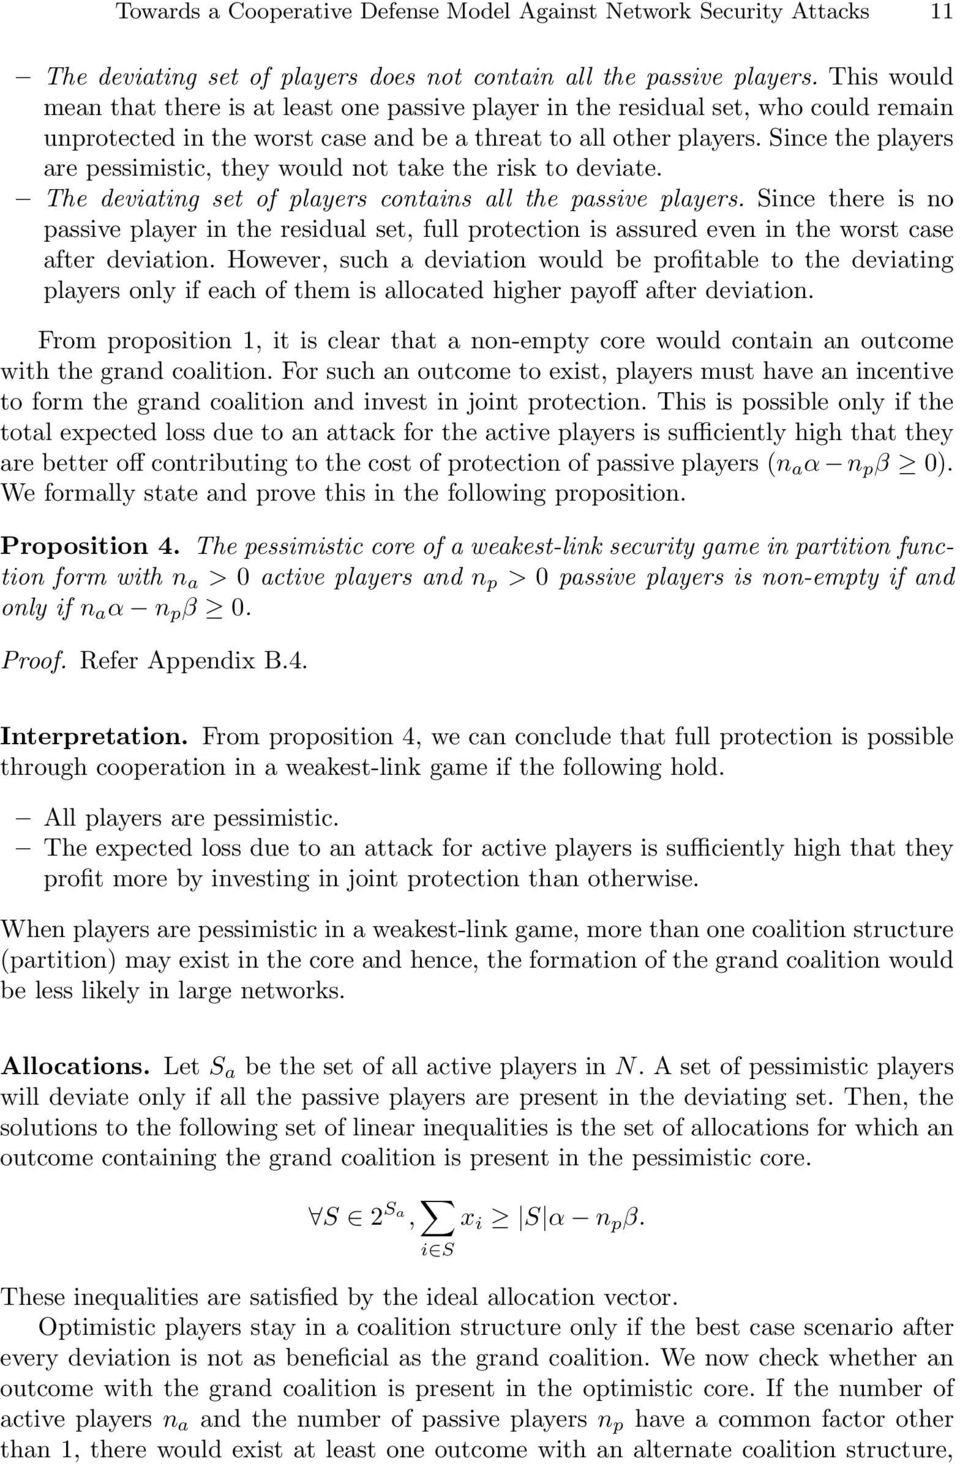 Since the players are pessimistic, they would not take the risk to deviate. The deviating set of players contains all the passive players.